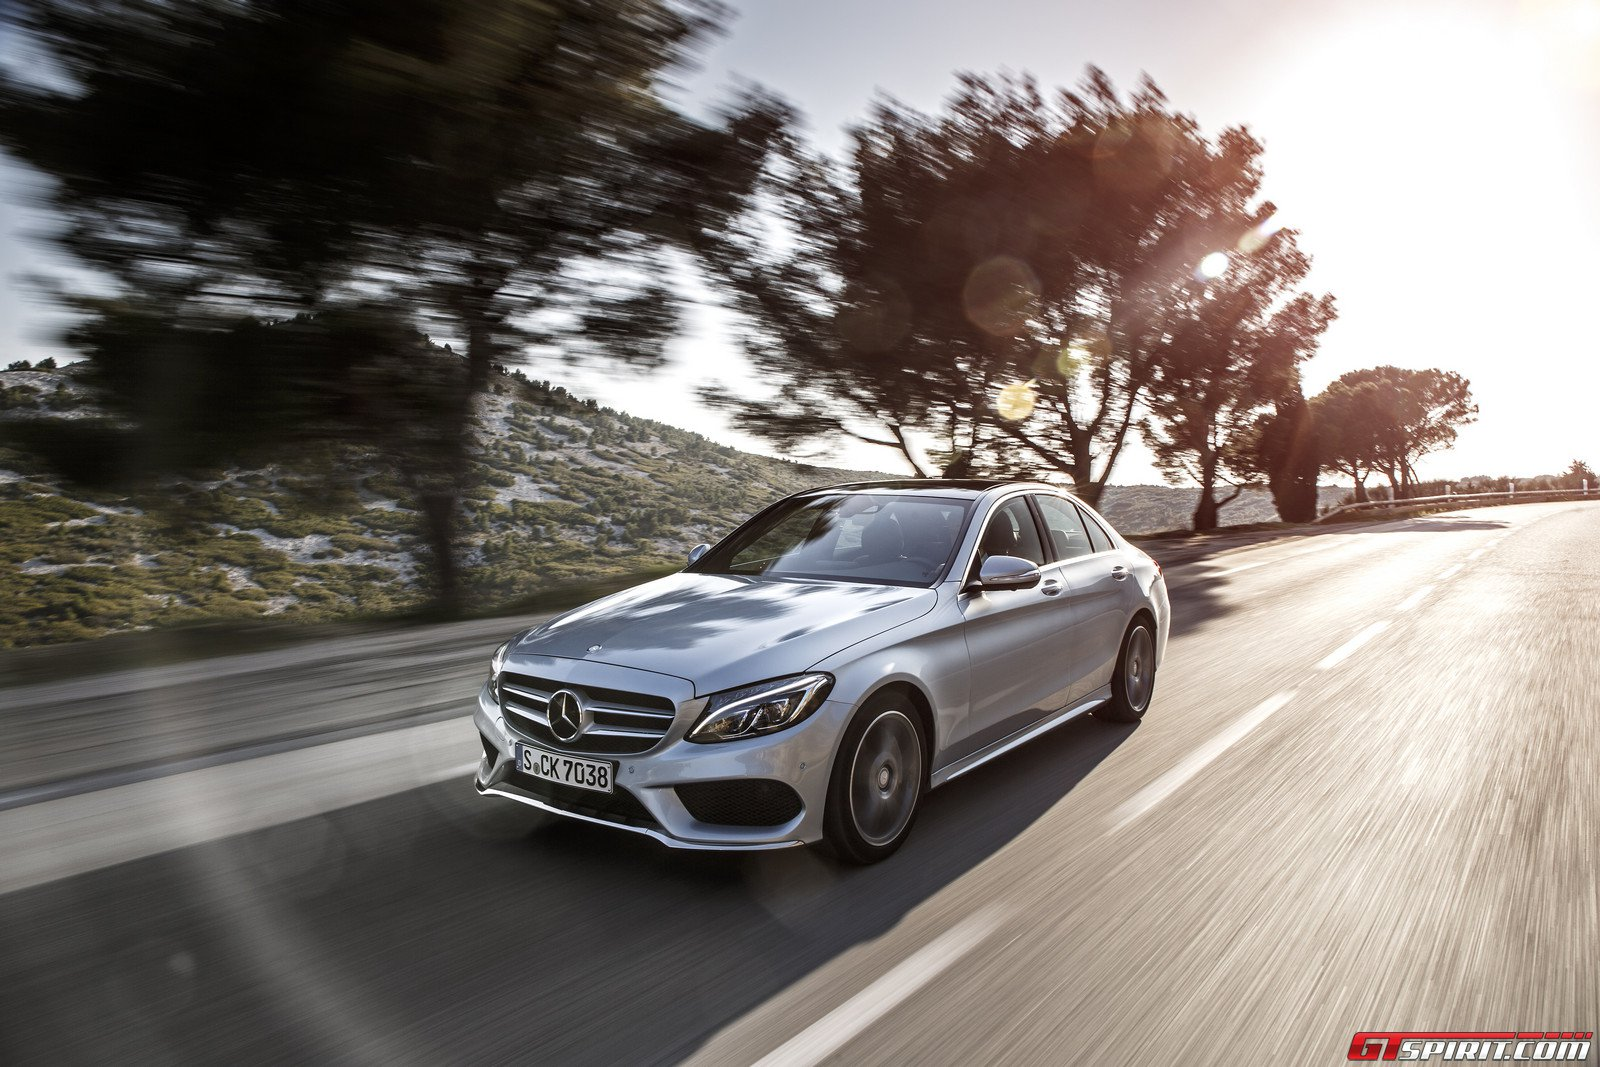 Mercedes benz to reveal c450 amg sport next year gtspirit for Mercedes benz c450